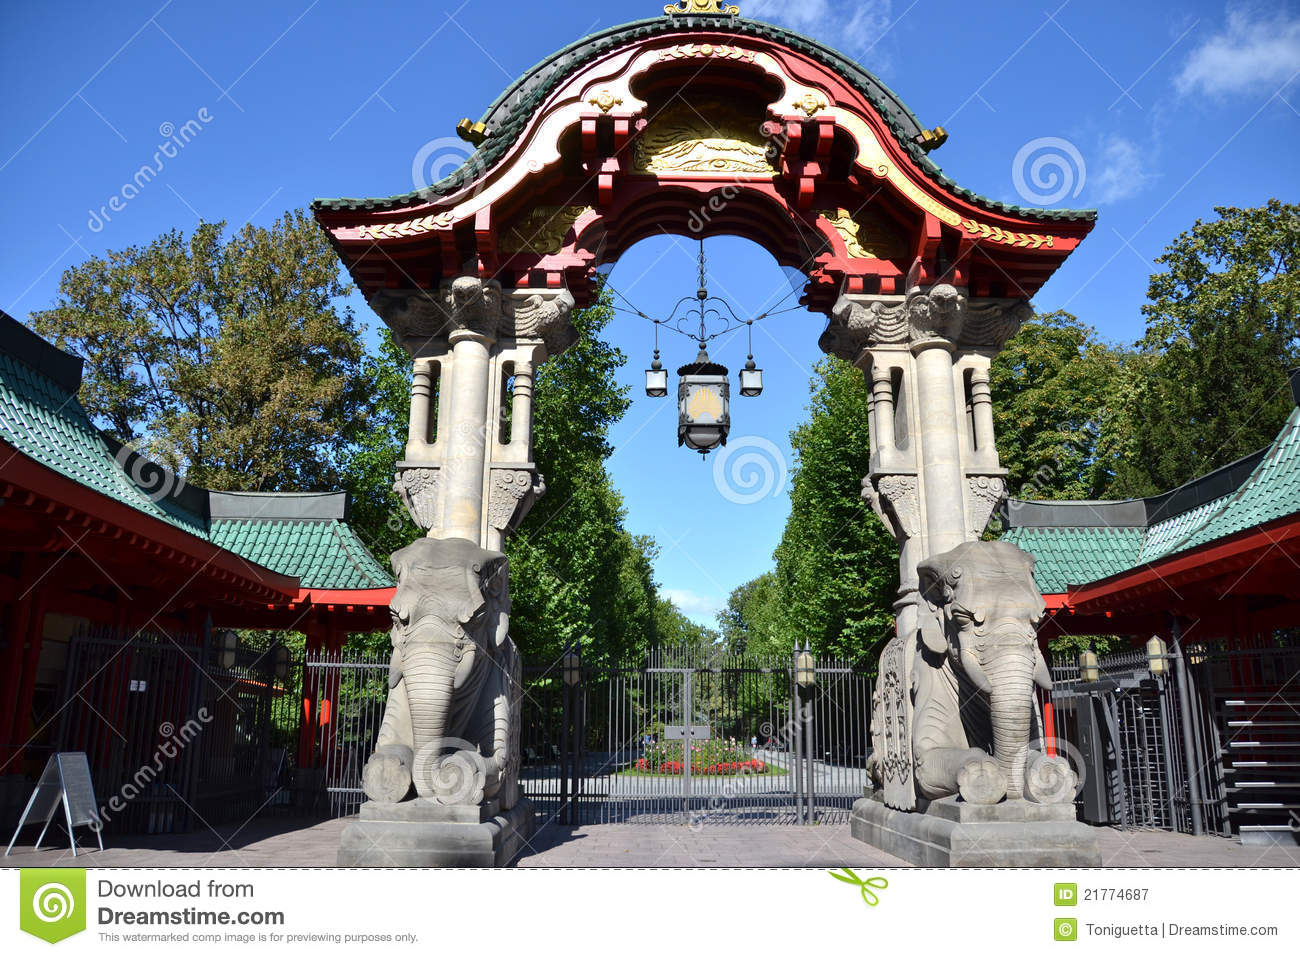 berlin zoo gate stock image image of garten zoologischer 21774687. Black Bedroom Furniture Sets. Home Design Ideas